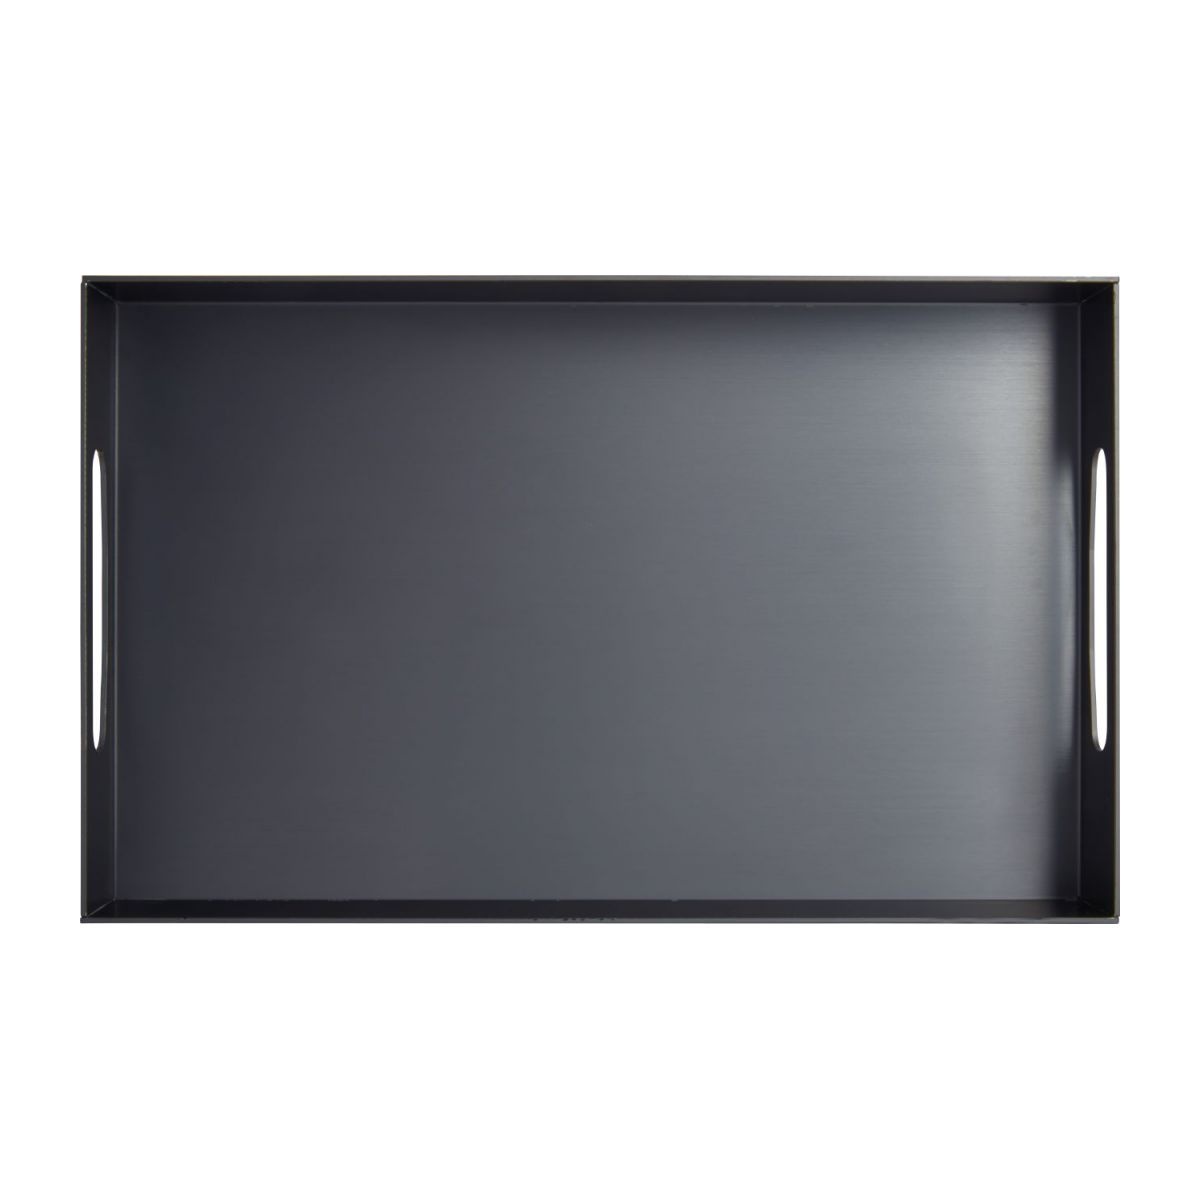 Tray in aluminium 40x25cm, black n°3